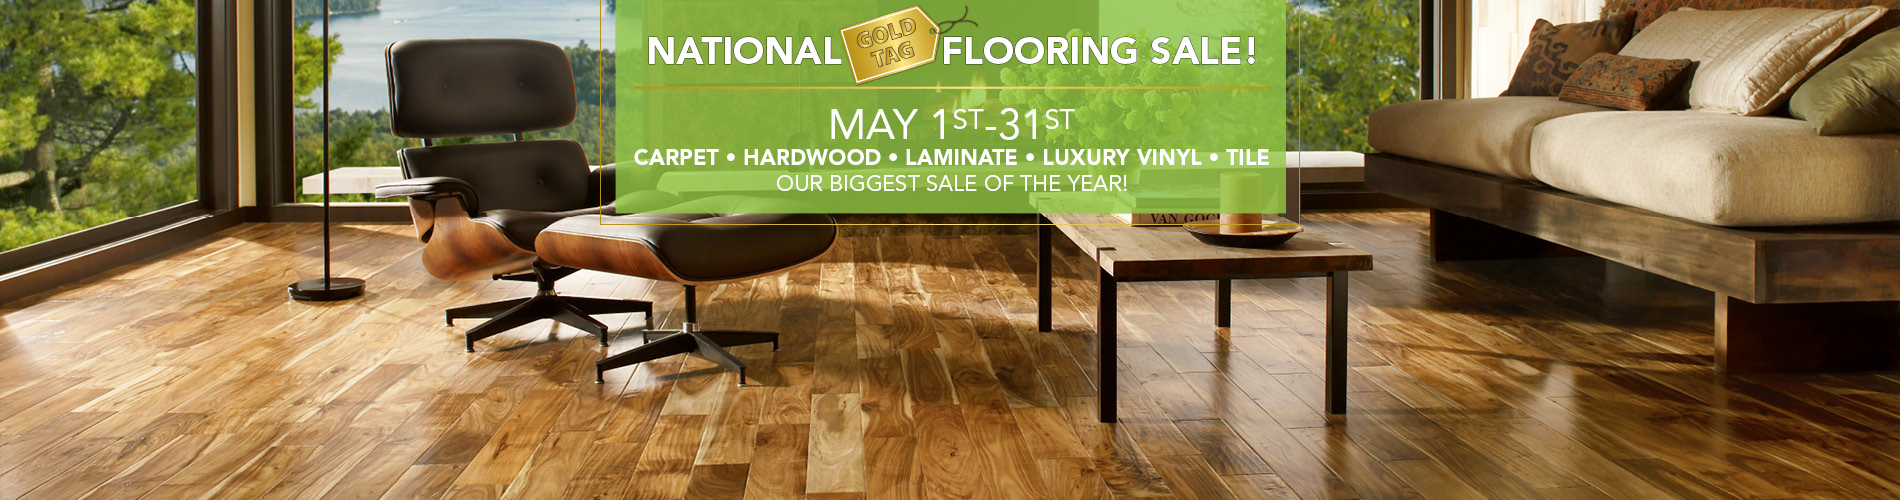 The Floor Club Indianapolis In 46227 Flooring To The